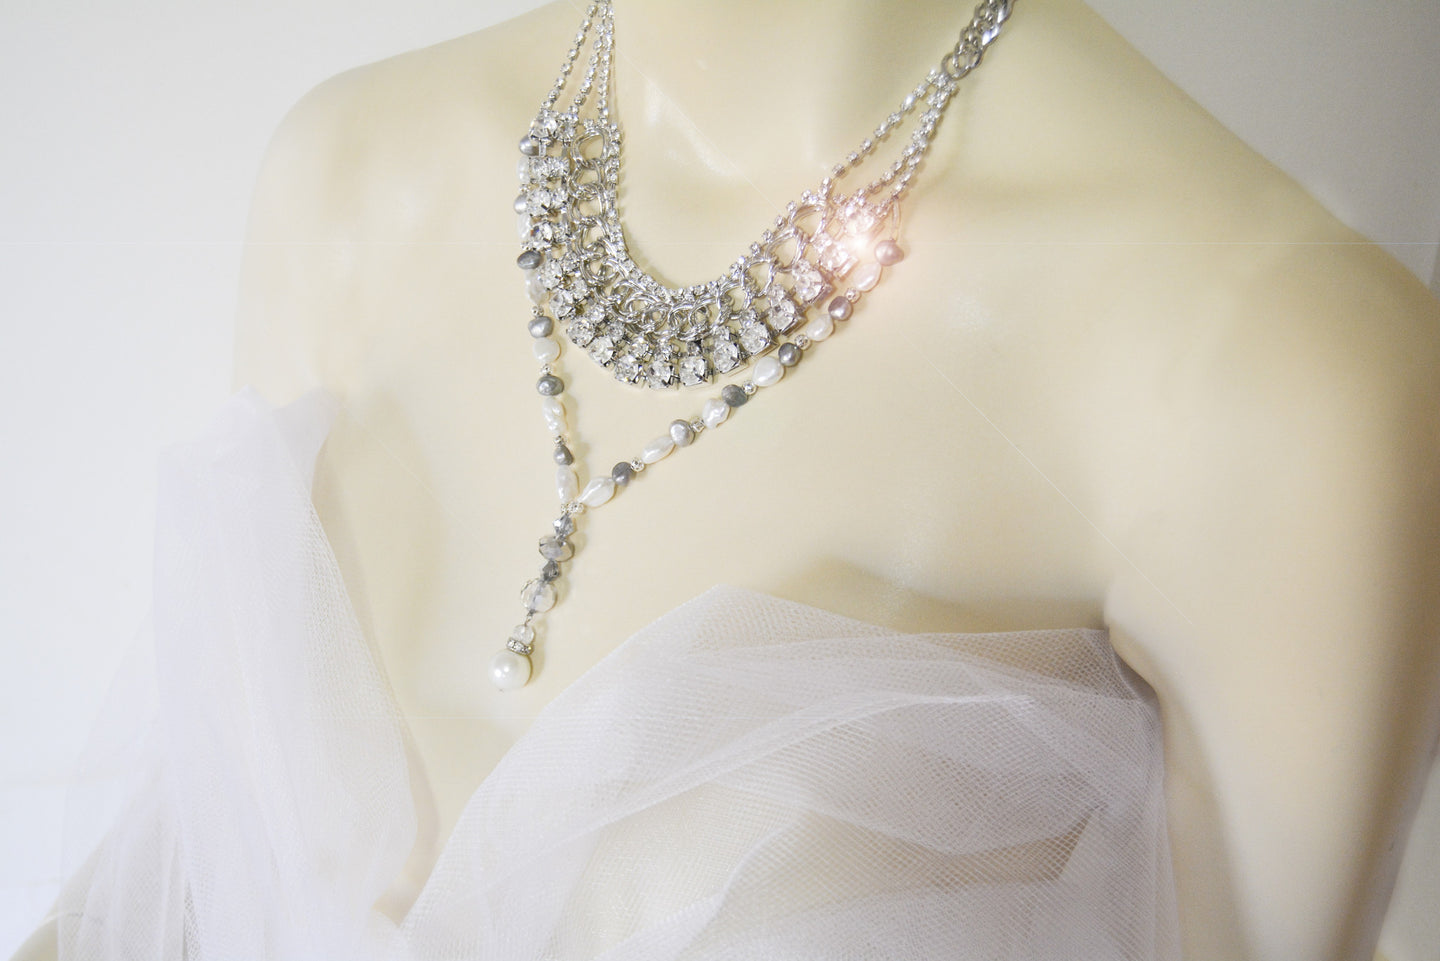 Silver Color Metal Multi Chain Crystals, Rhinestones & Large Fresh Water Pearl Necklace